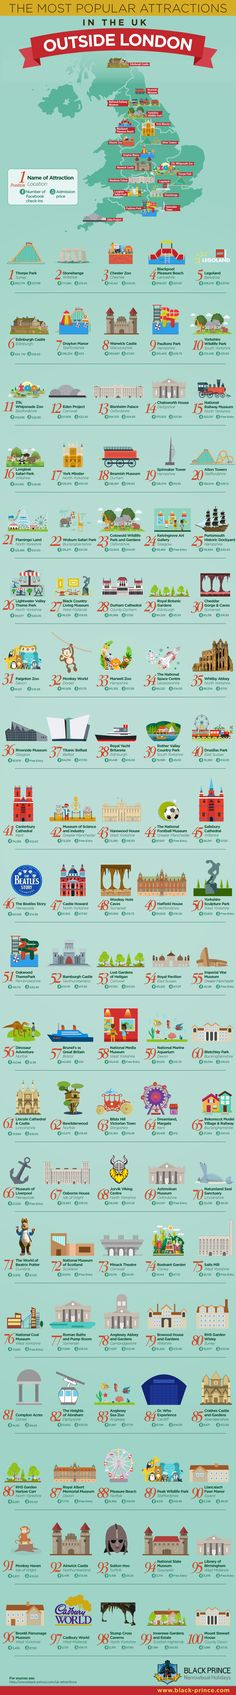 There's so much to do in the UK outside of London.